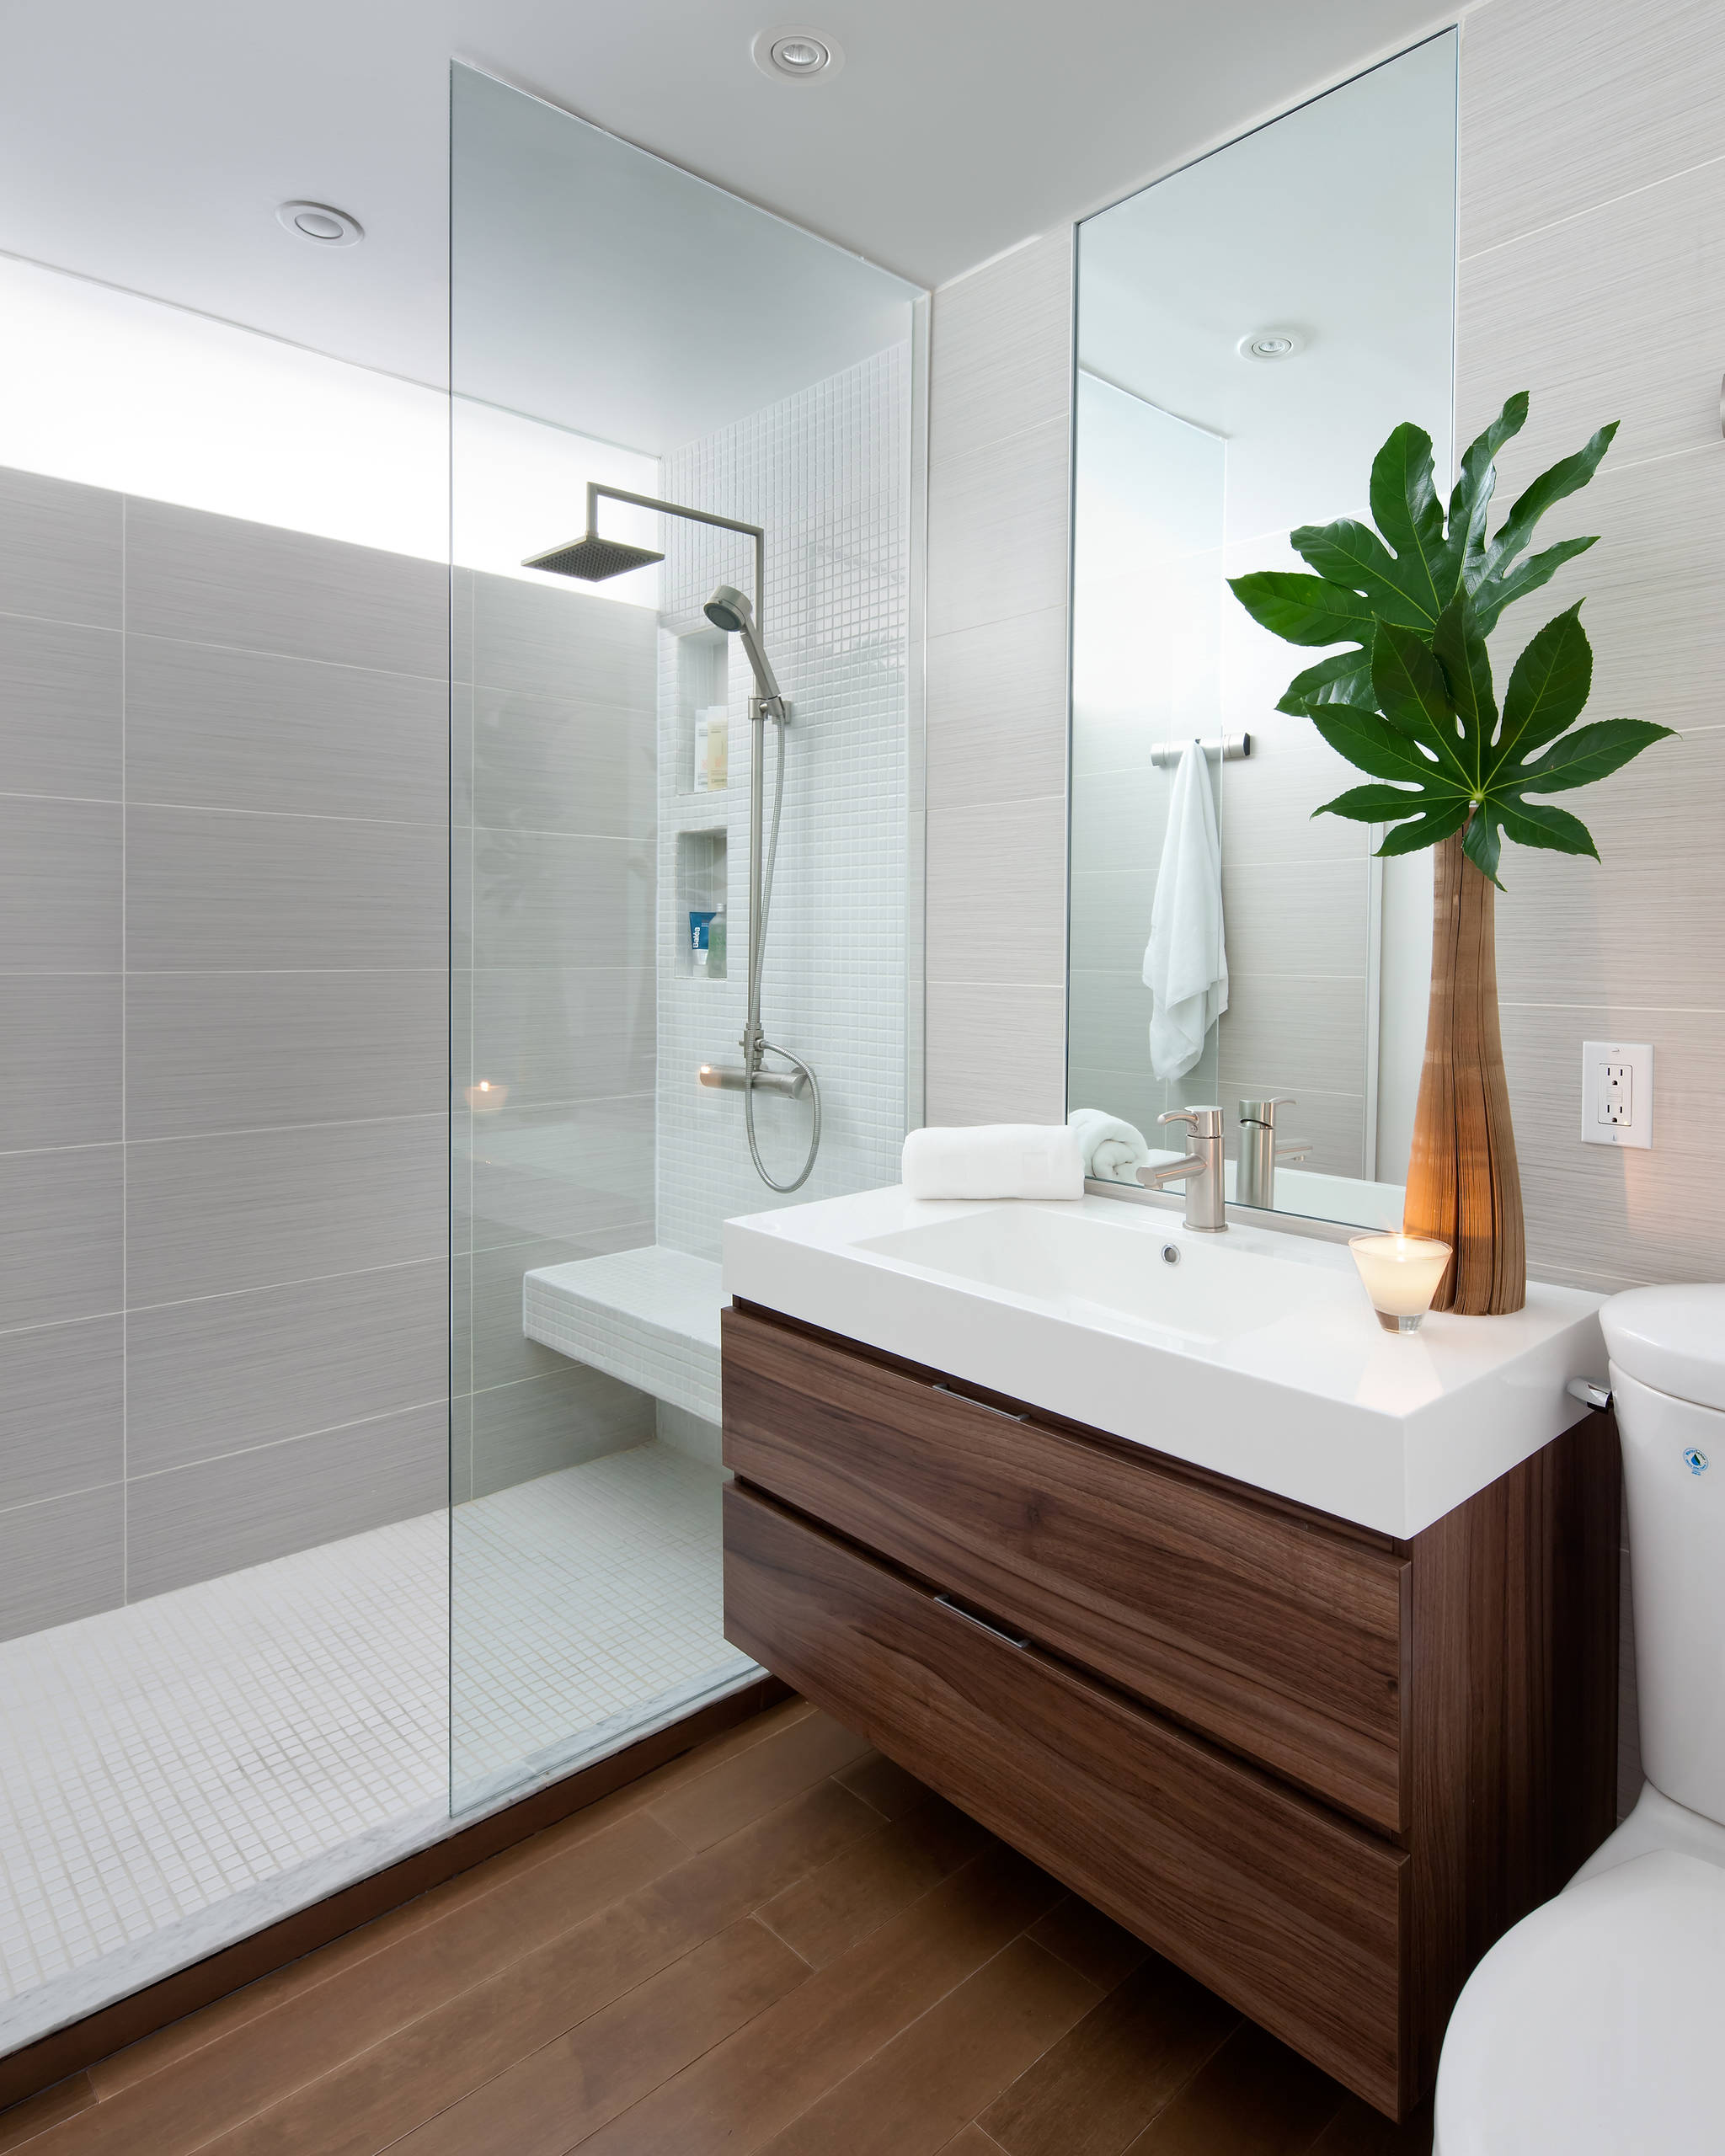 75 Beautiful Modern Bathroom Pictures Ideas April 2021 Houzz